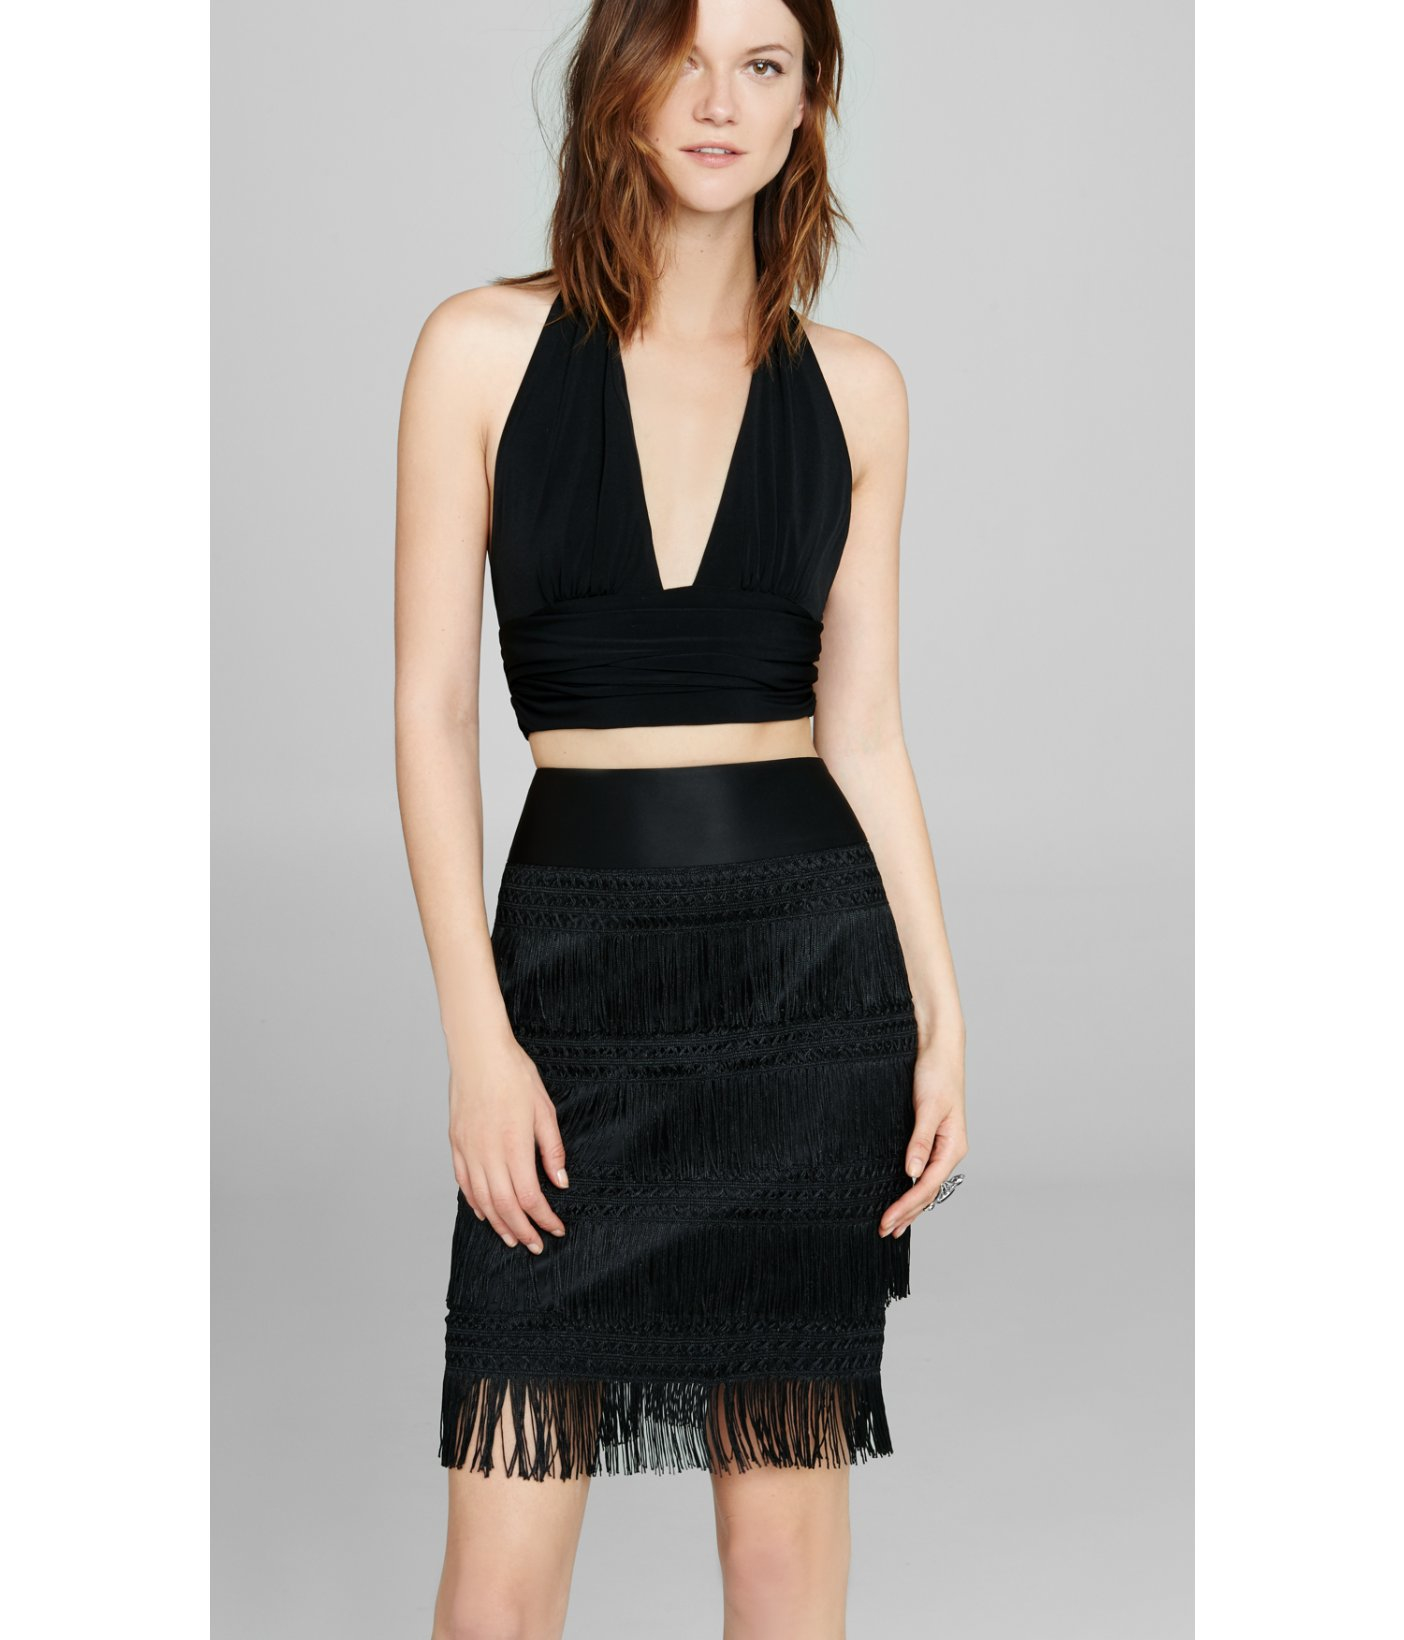 Express Plunging V-neck Halter Crop Top in Black (PITCH BLACK) | Lyst